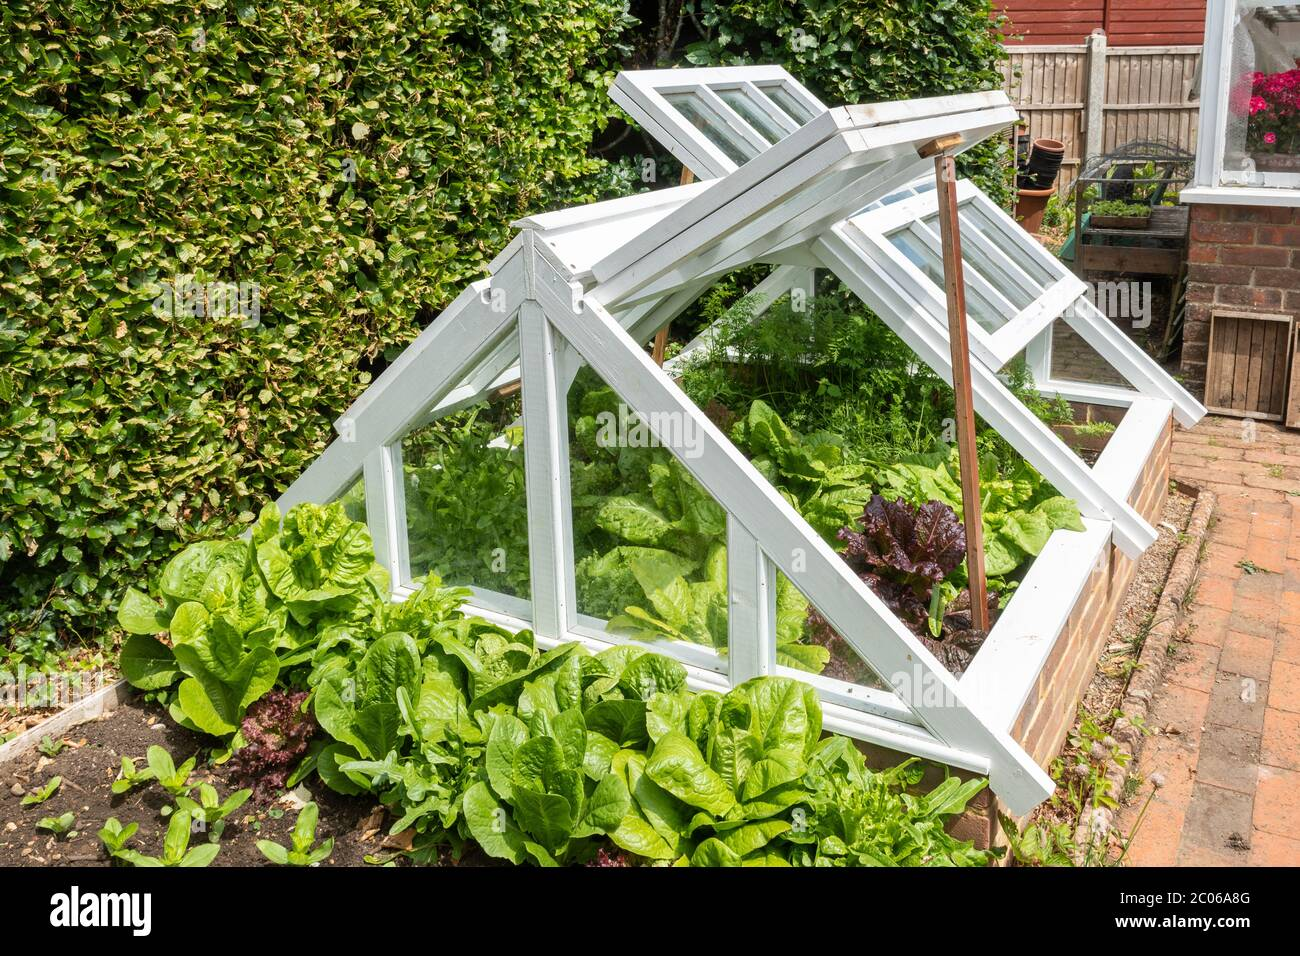 lettuces-and-other-salad-leaf-plants-growing-in-a-cold-frame-in-a-garden-in-june-uk-2C06A8G.jpg